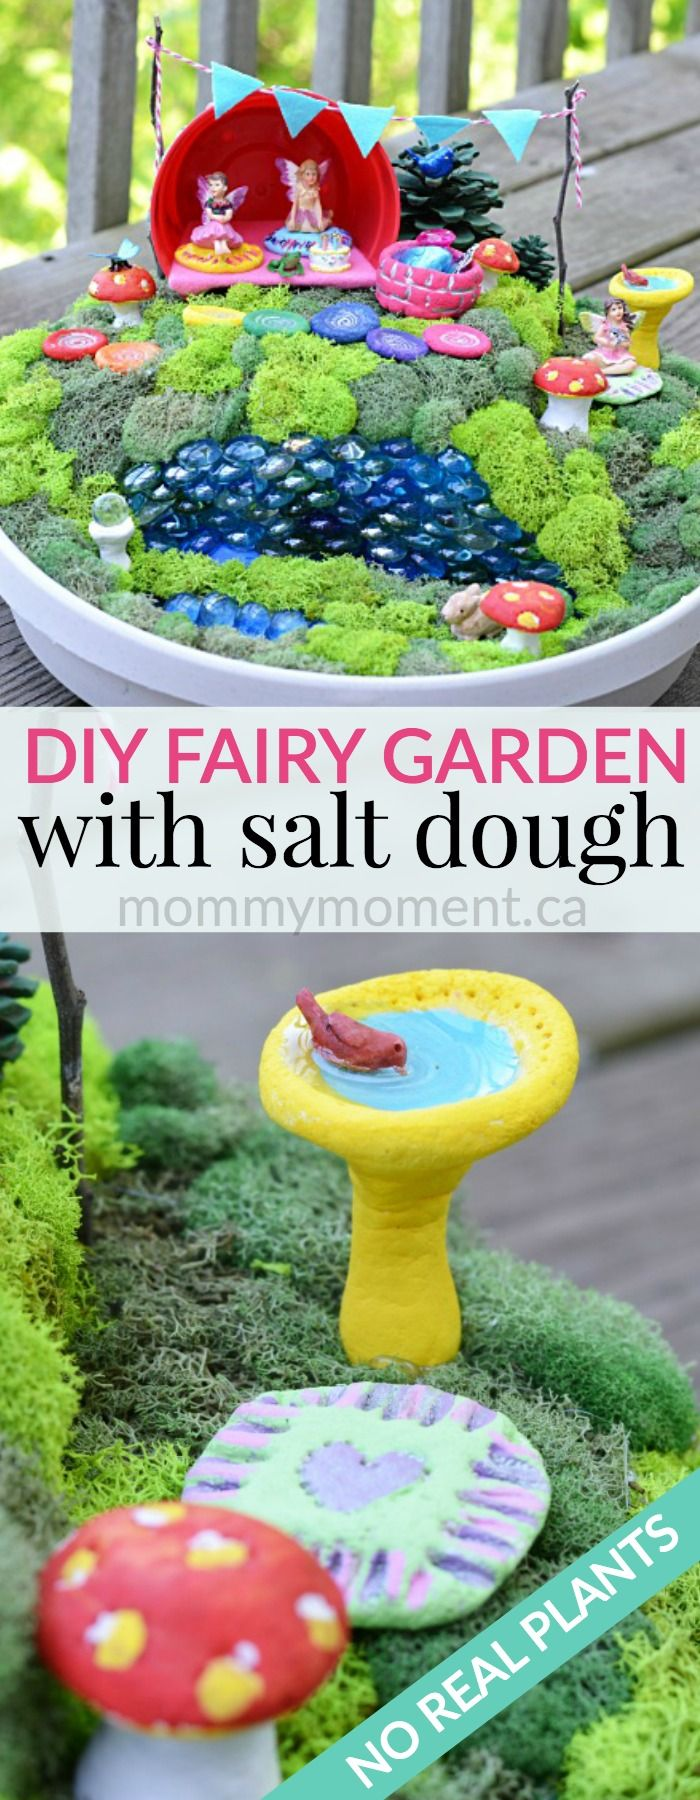 diy salt dough fairy garden is perfect all year around. No real plants in this fairy garden.